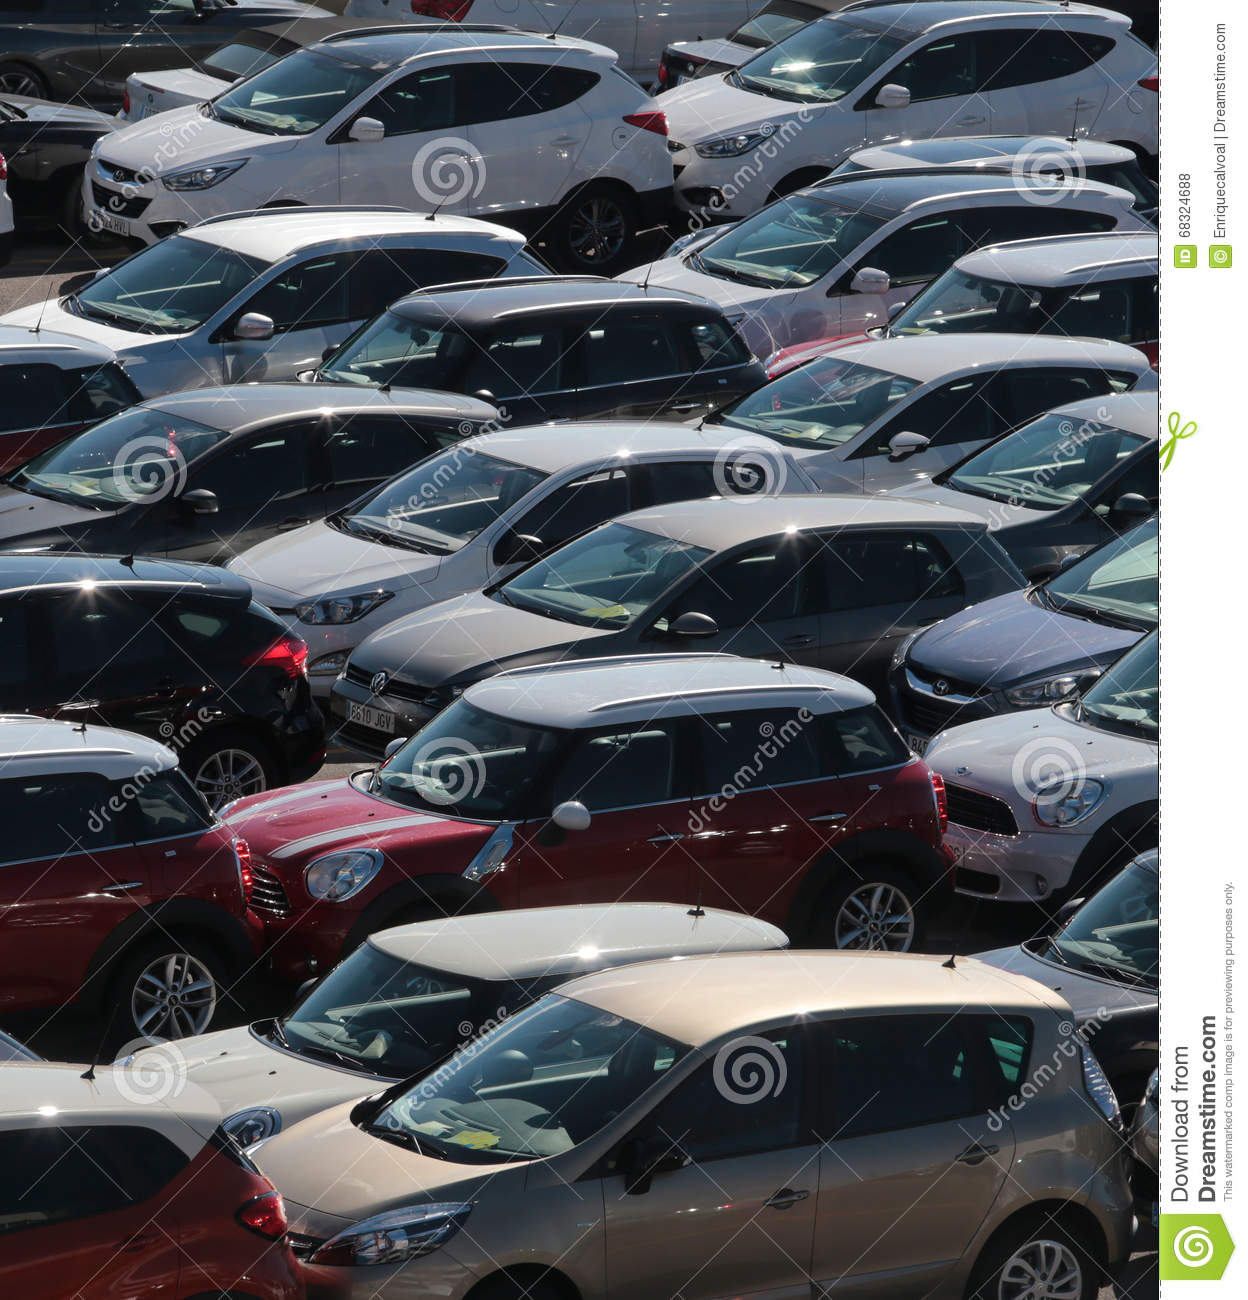 Cars 061 Vertical Editorial Stock Photo - Image: 68324688